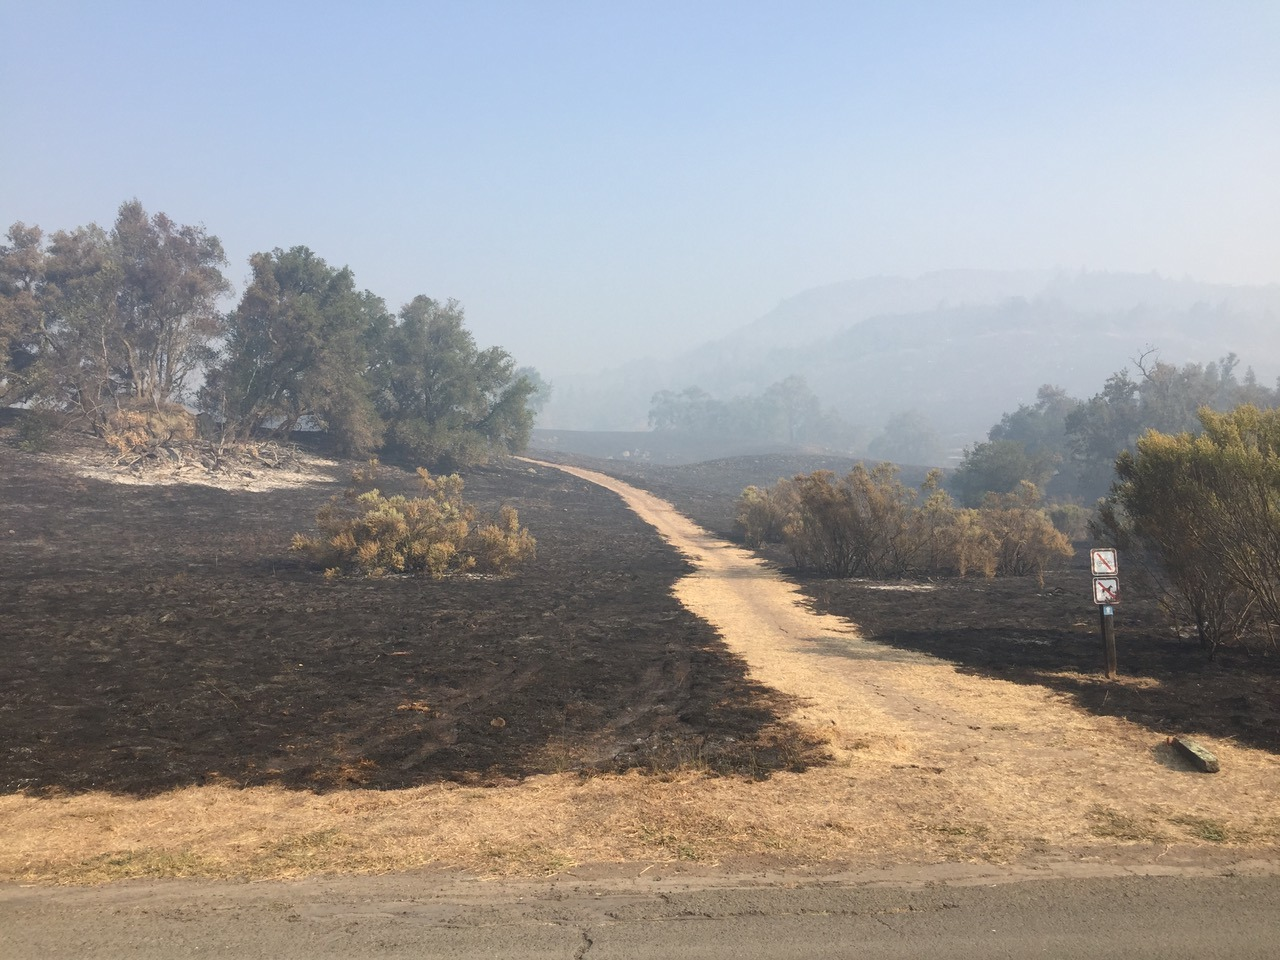 Post-Fire Tips for Sonoma Valley Residents